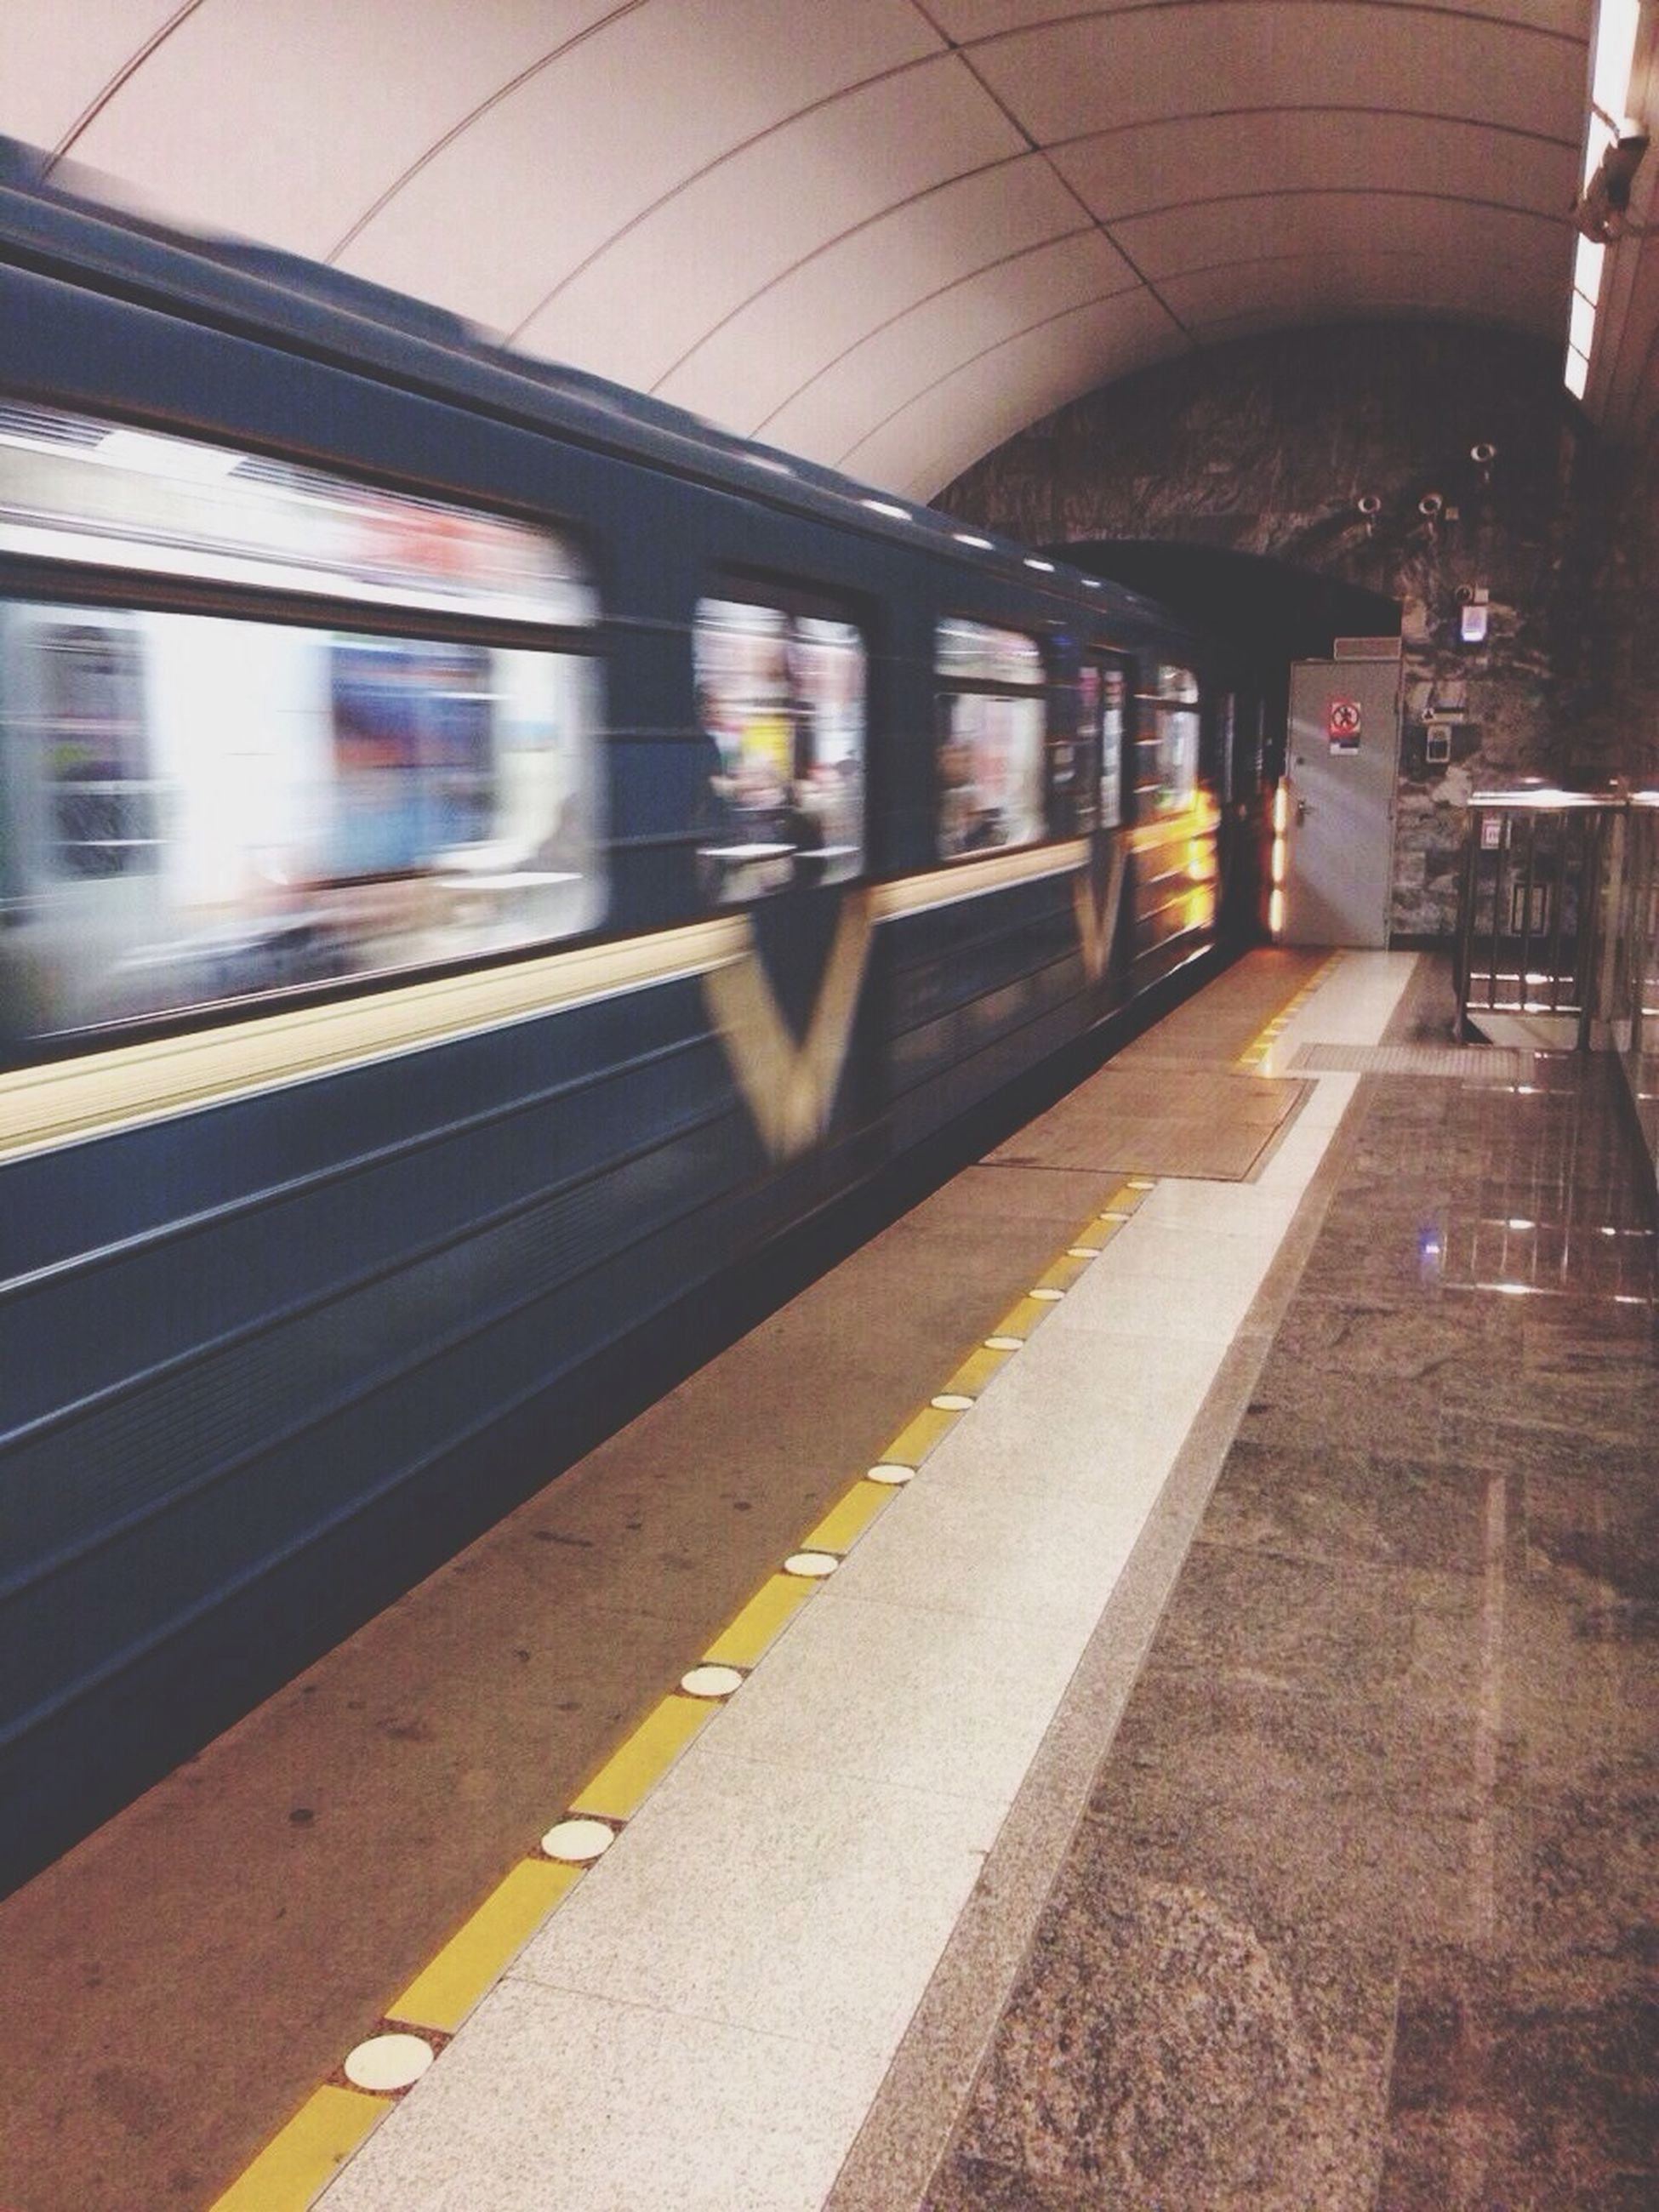 transportation, railroad station platform, public transportation, railroad station, railroad track, rail transportation, train - vehicle, mode of transport, travel, passenger train, train, public transport, subway station, blurred motion, motion, illuminated, built structure, railway station, speed, indoors